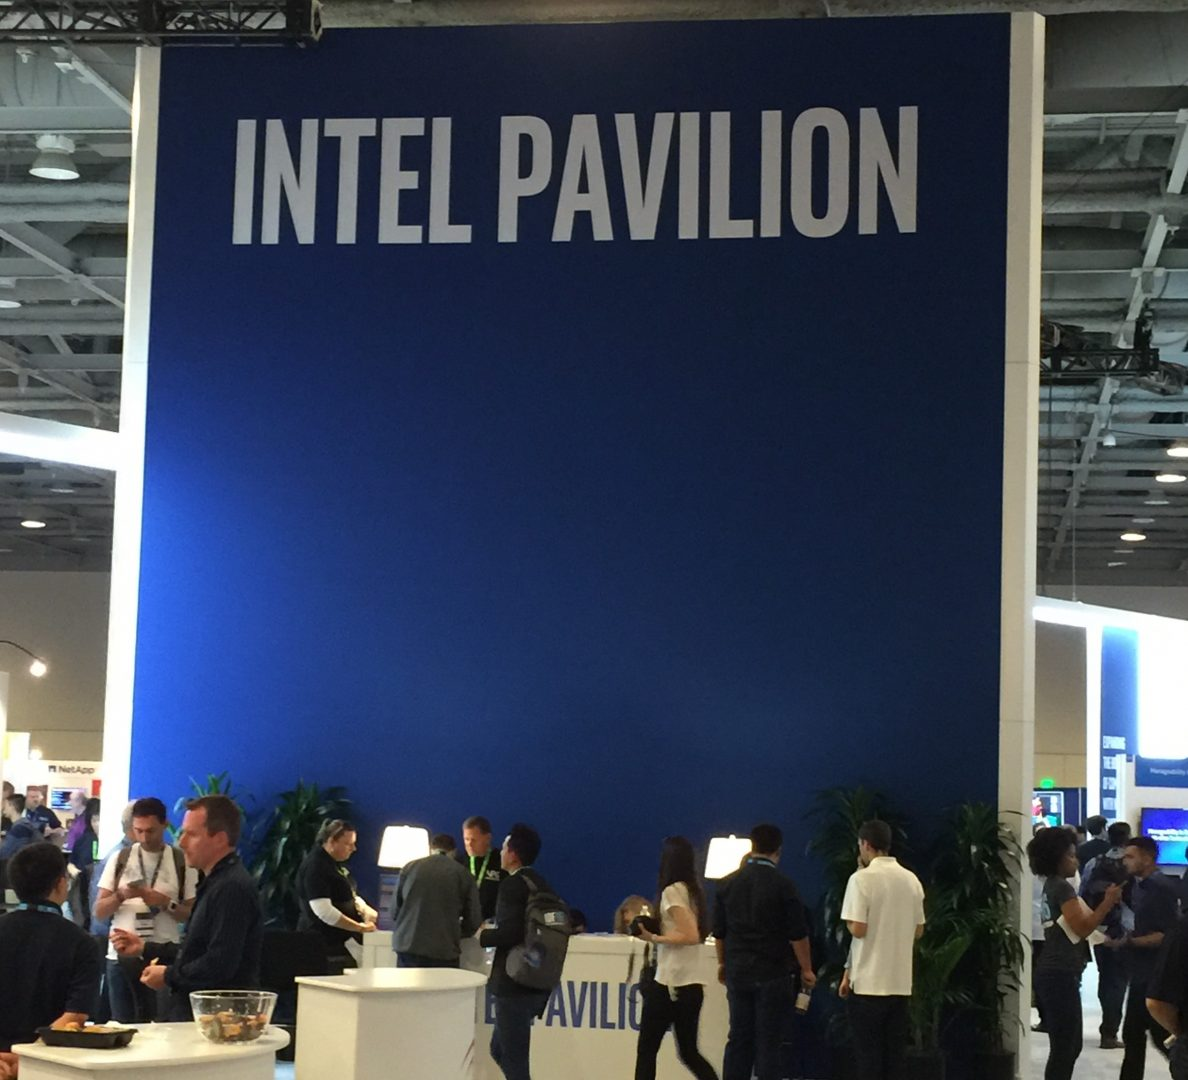 The Intel Pavilion front and center in the Technical Showcase